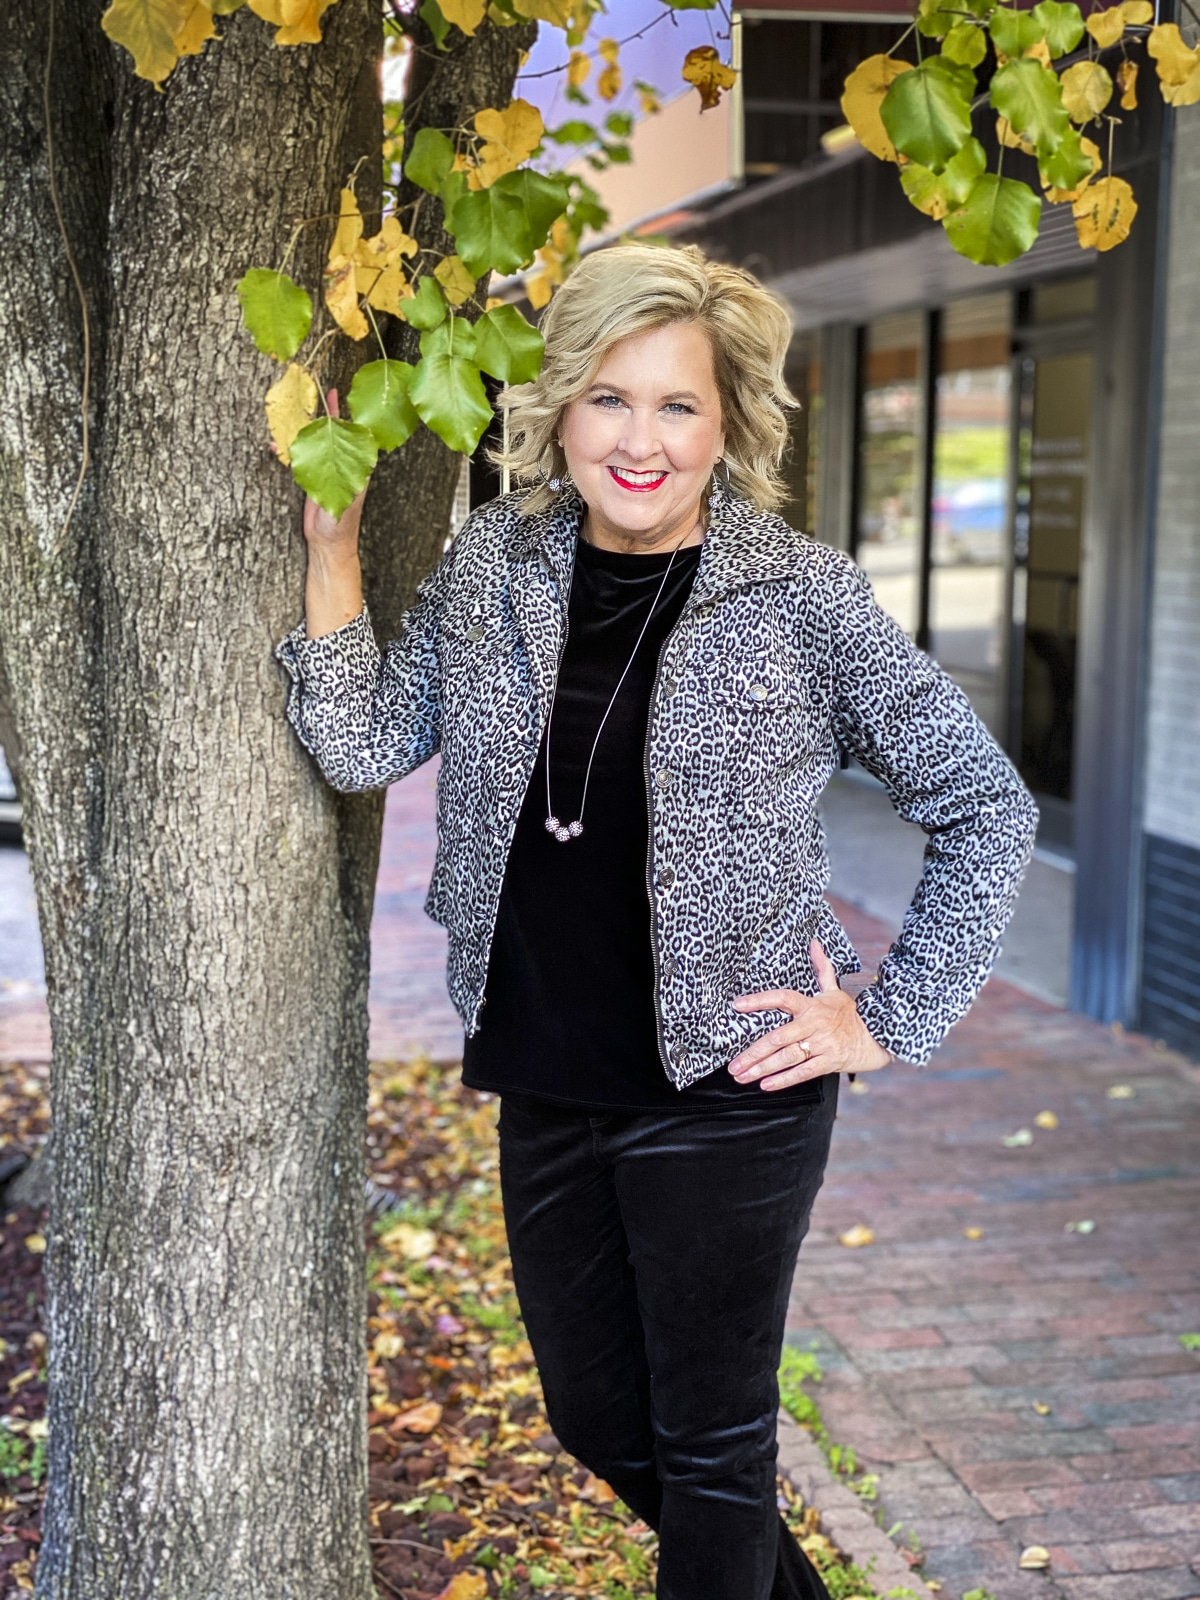 Fashion Blogger 50 Is Not Old is festive under a tree with fall leaves in a black velvet tank top and jeggings from Chico's